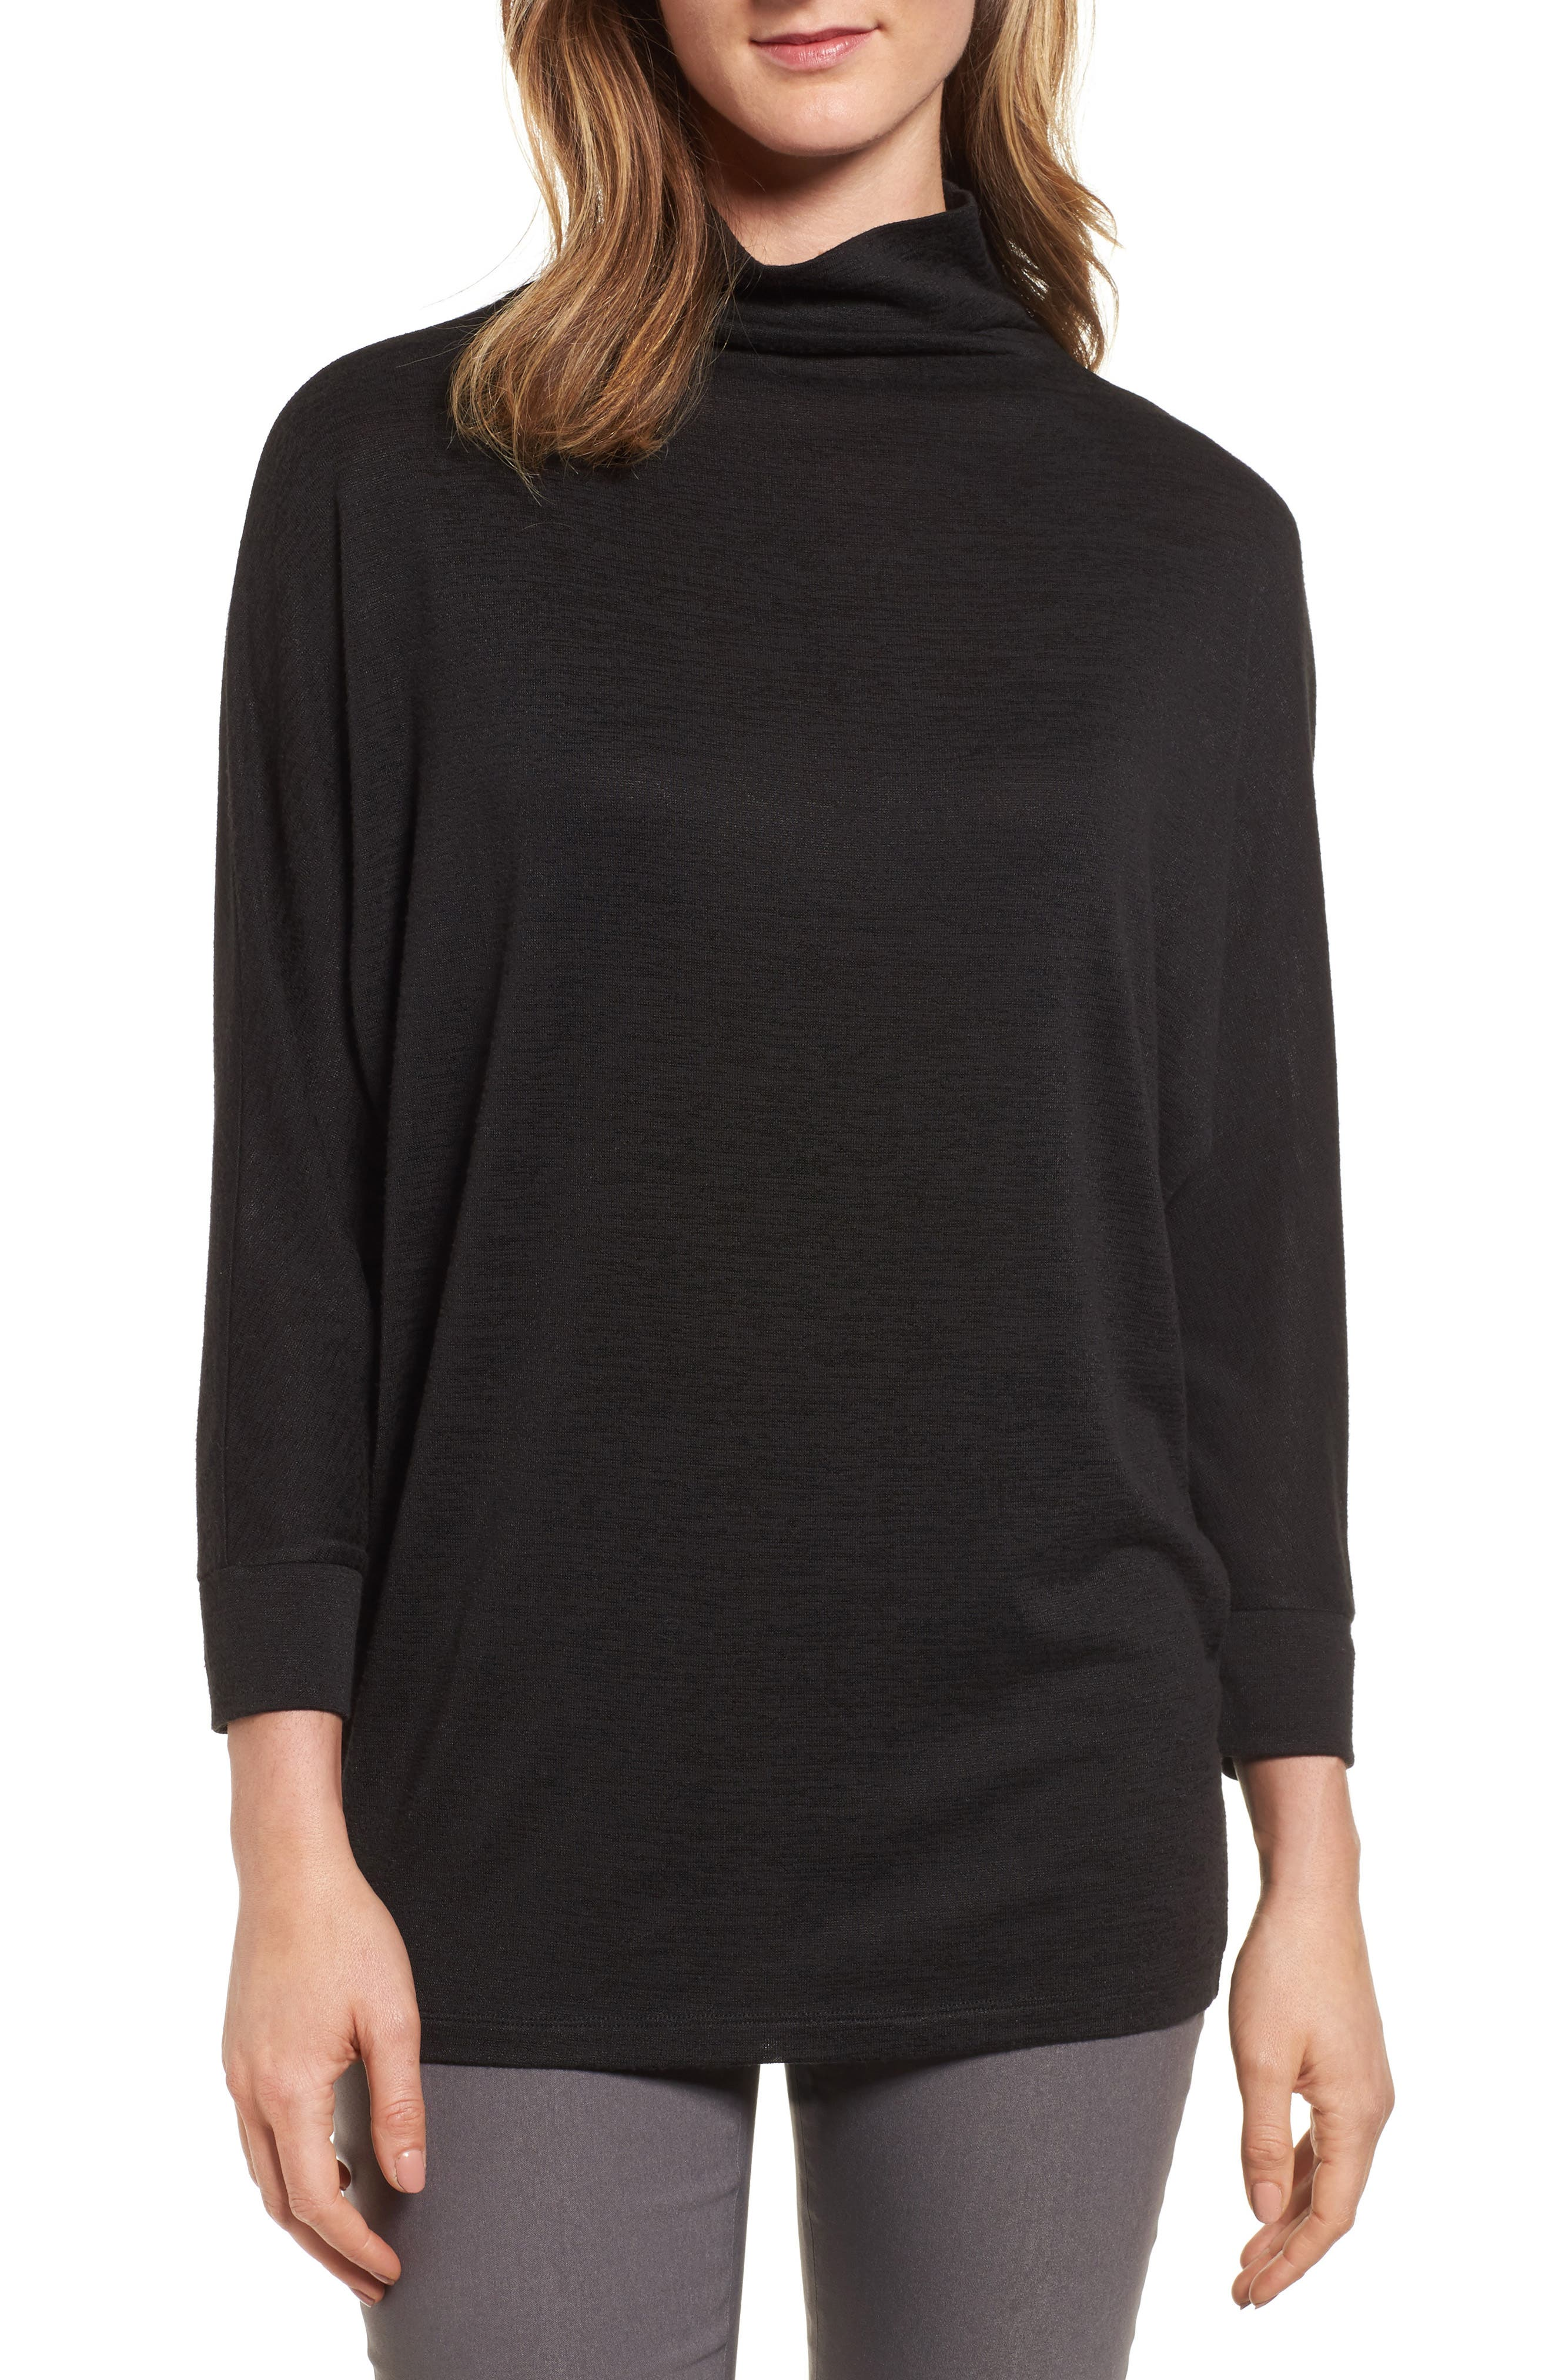 Every Occasion Mockneck Top,                             Main thumbnail 1, color,                             004